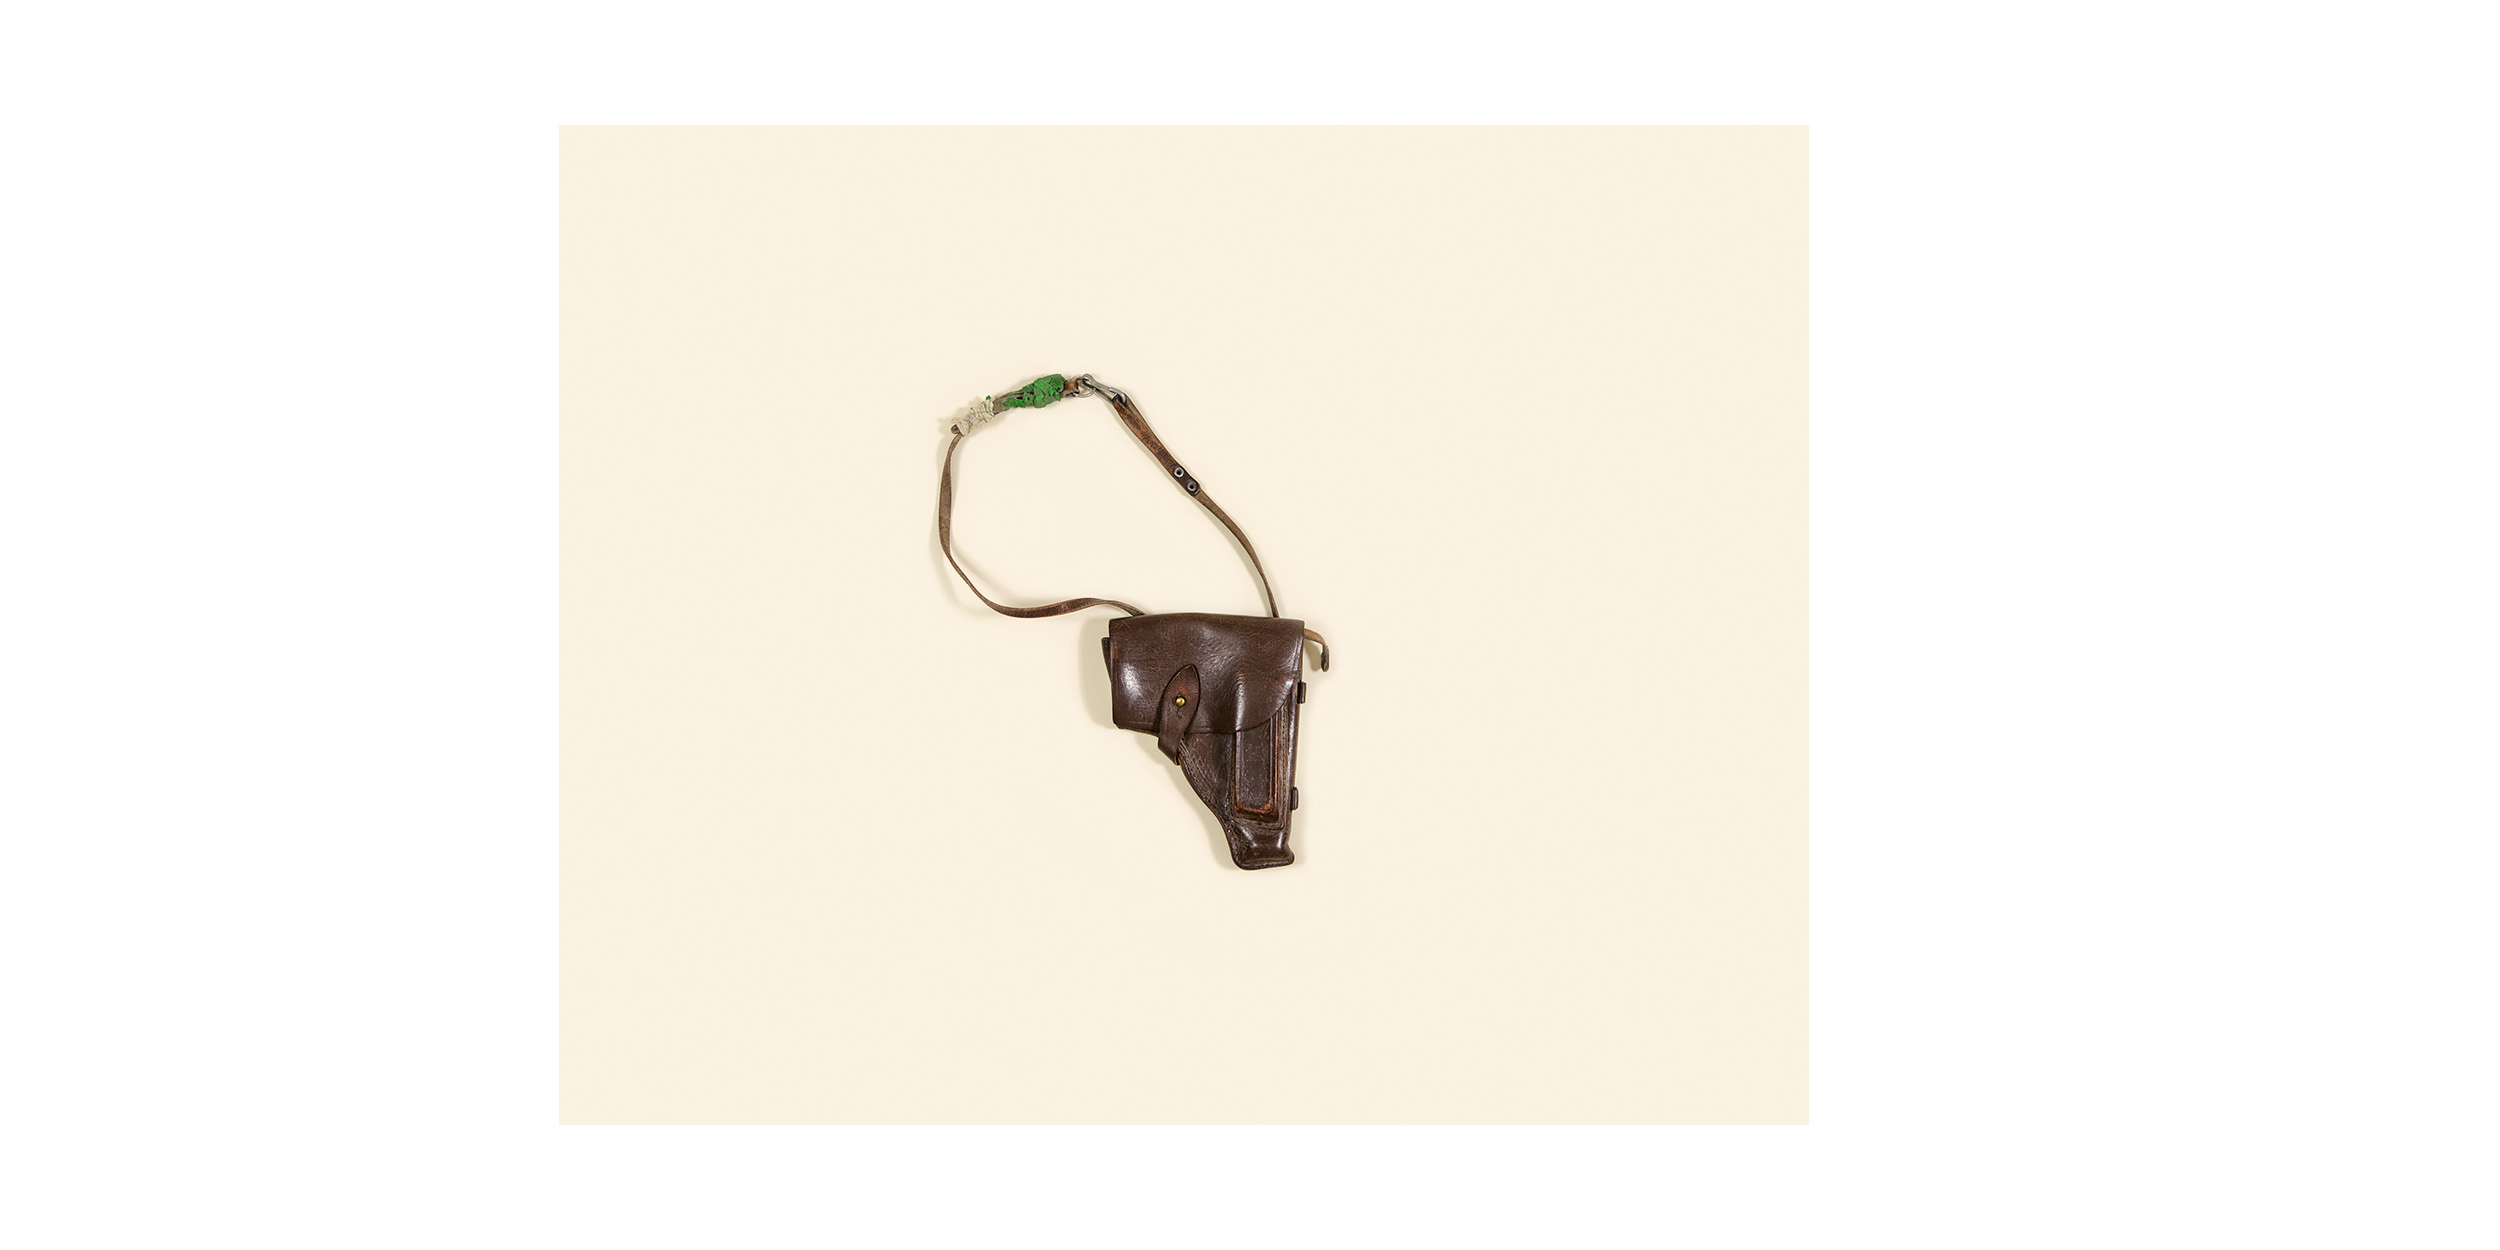 A Soviet-era pistol holster found on a Taliban position during Operation Medusa in Kandahar province in 2006. At the time, it was the most significant land battle ever undertaken by NATO.